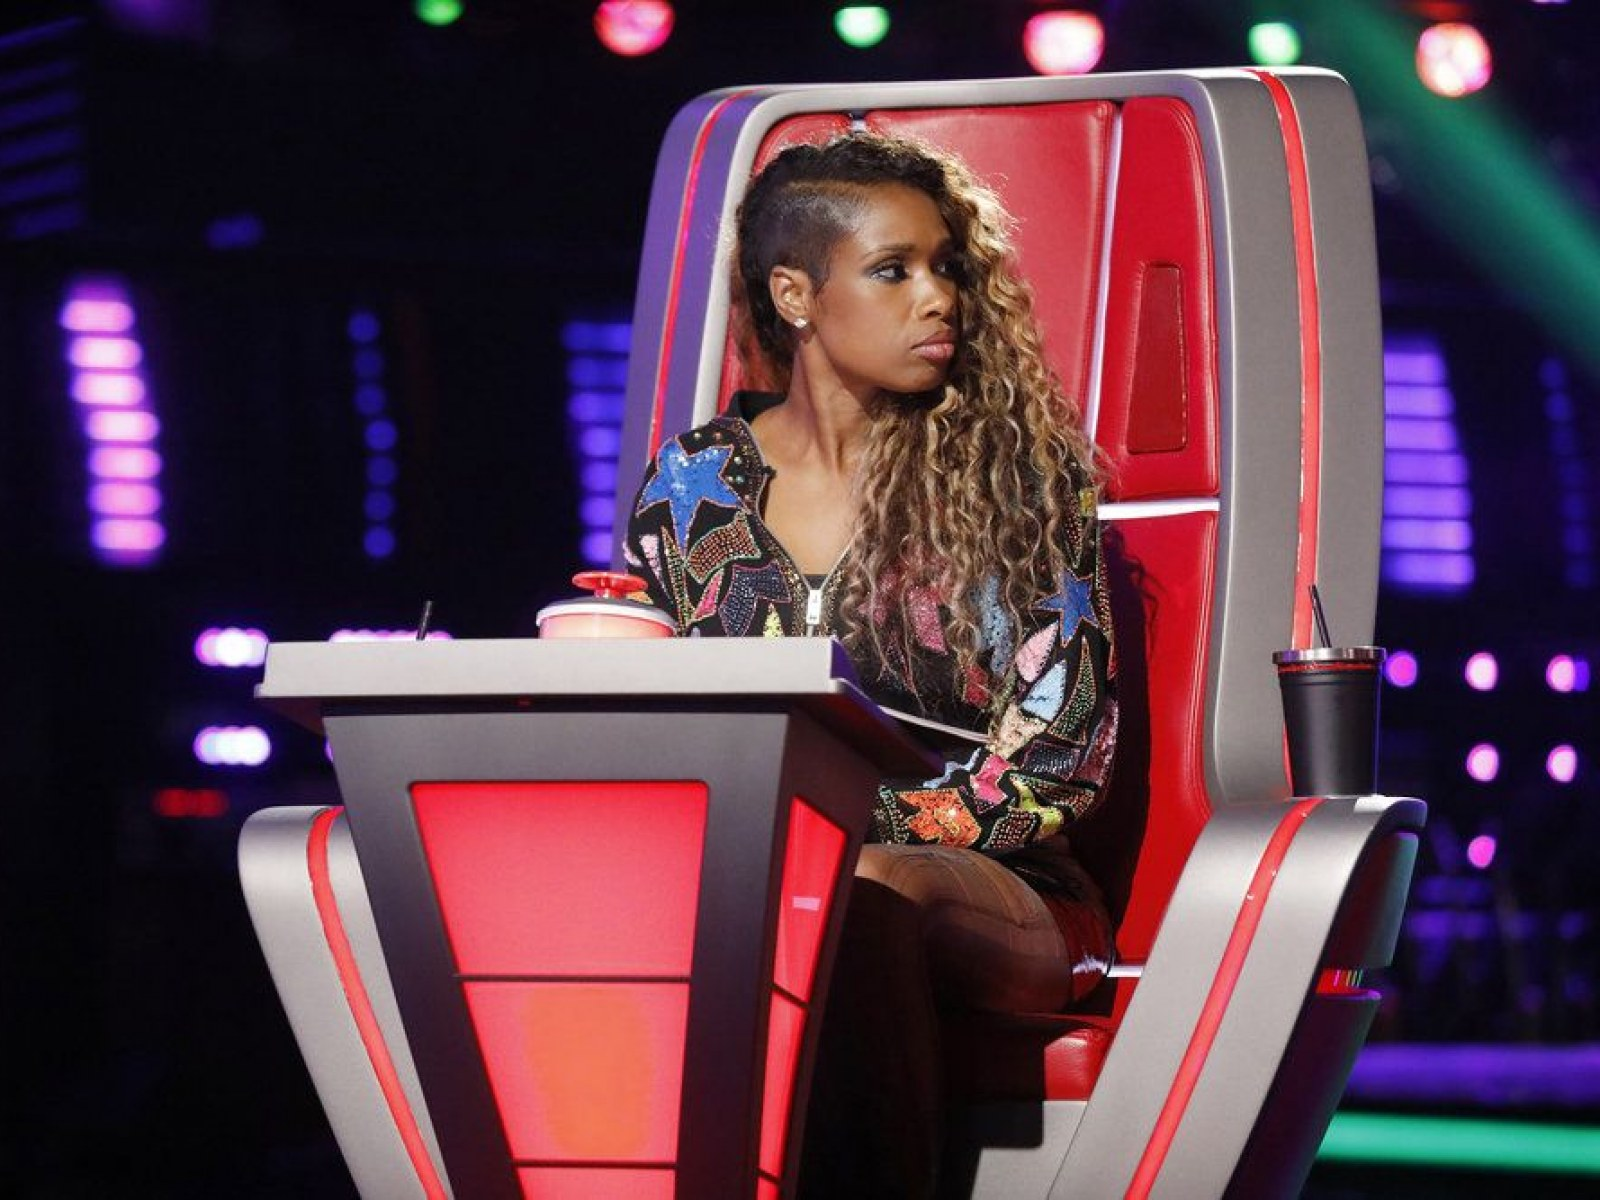 The Voice' Season 15 Blind Auditions 6 Recap: Who Made the